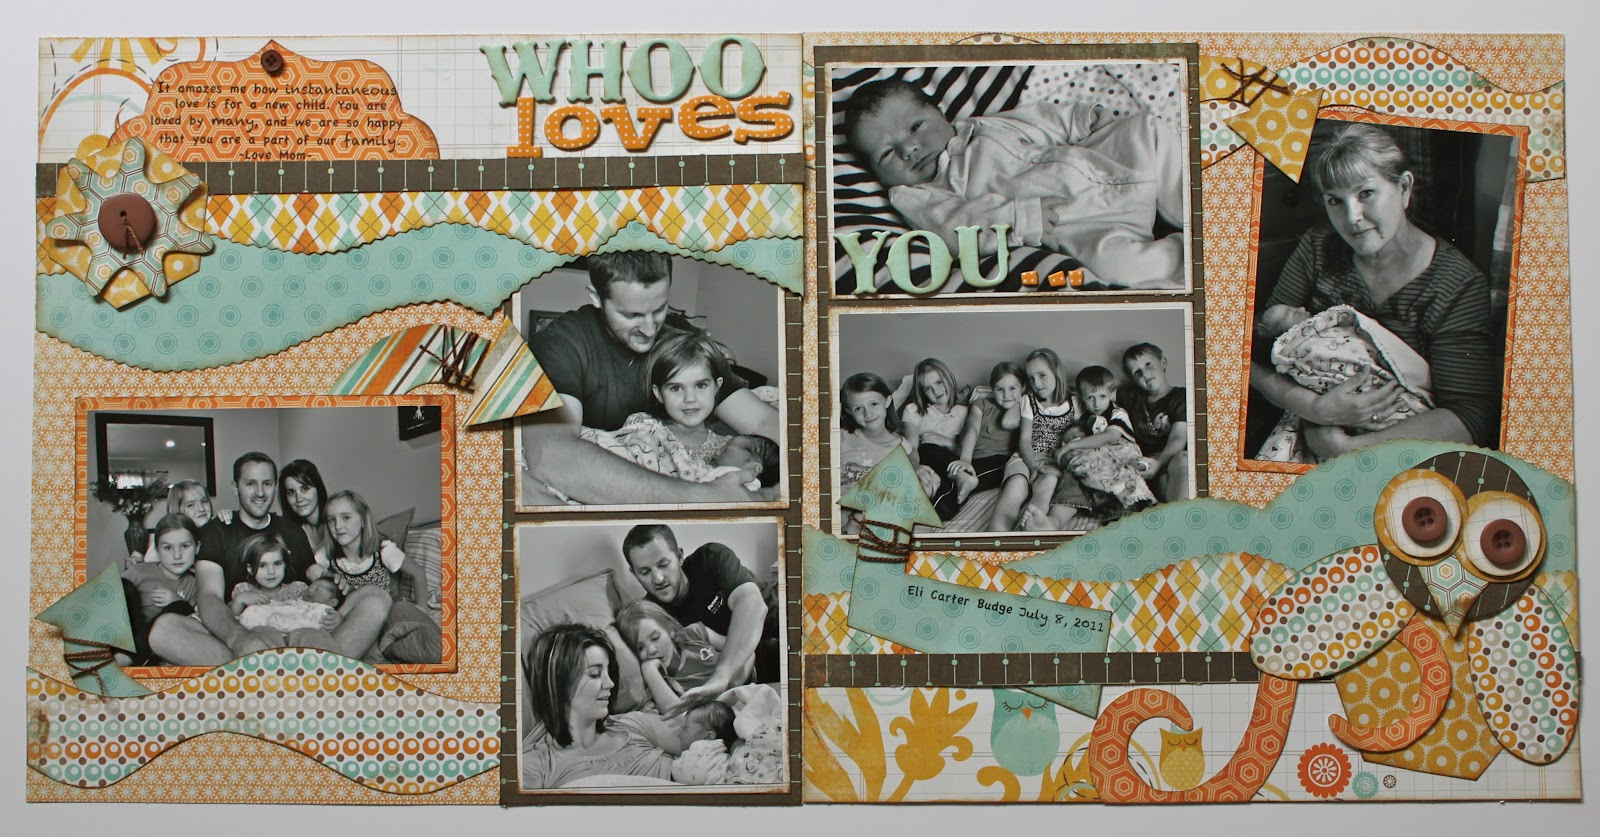 Scrapbook ideas zoo - 1872 Best Images About Scrapbooking Scrapbooking Layouts Mini Albums Idea S On Pinterest Mini Albums Tim Holtz And Papercraft